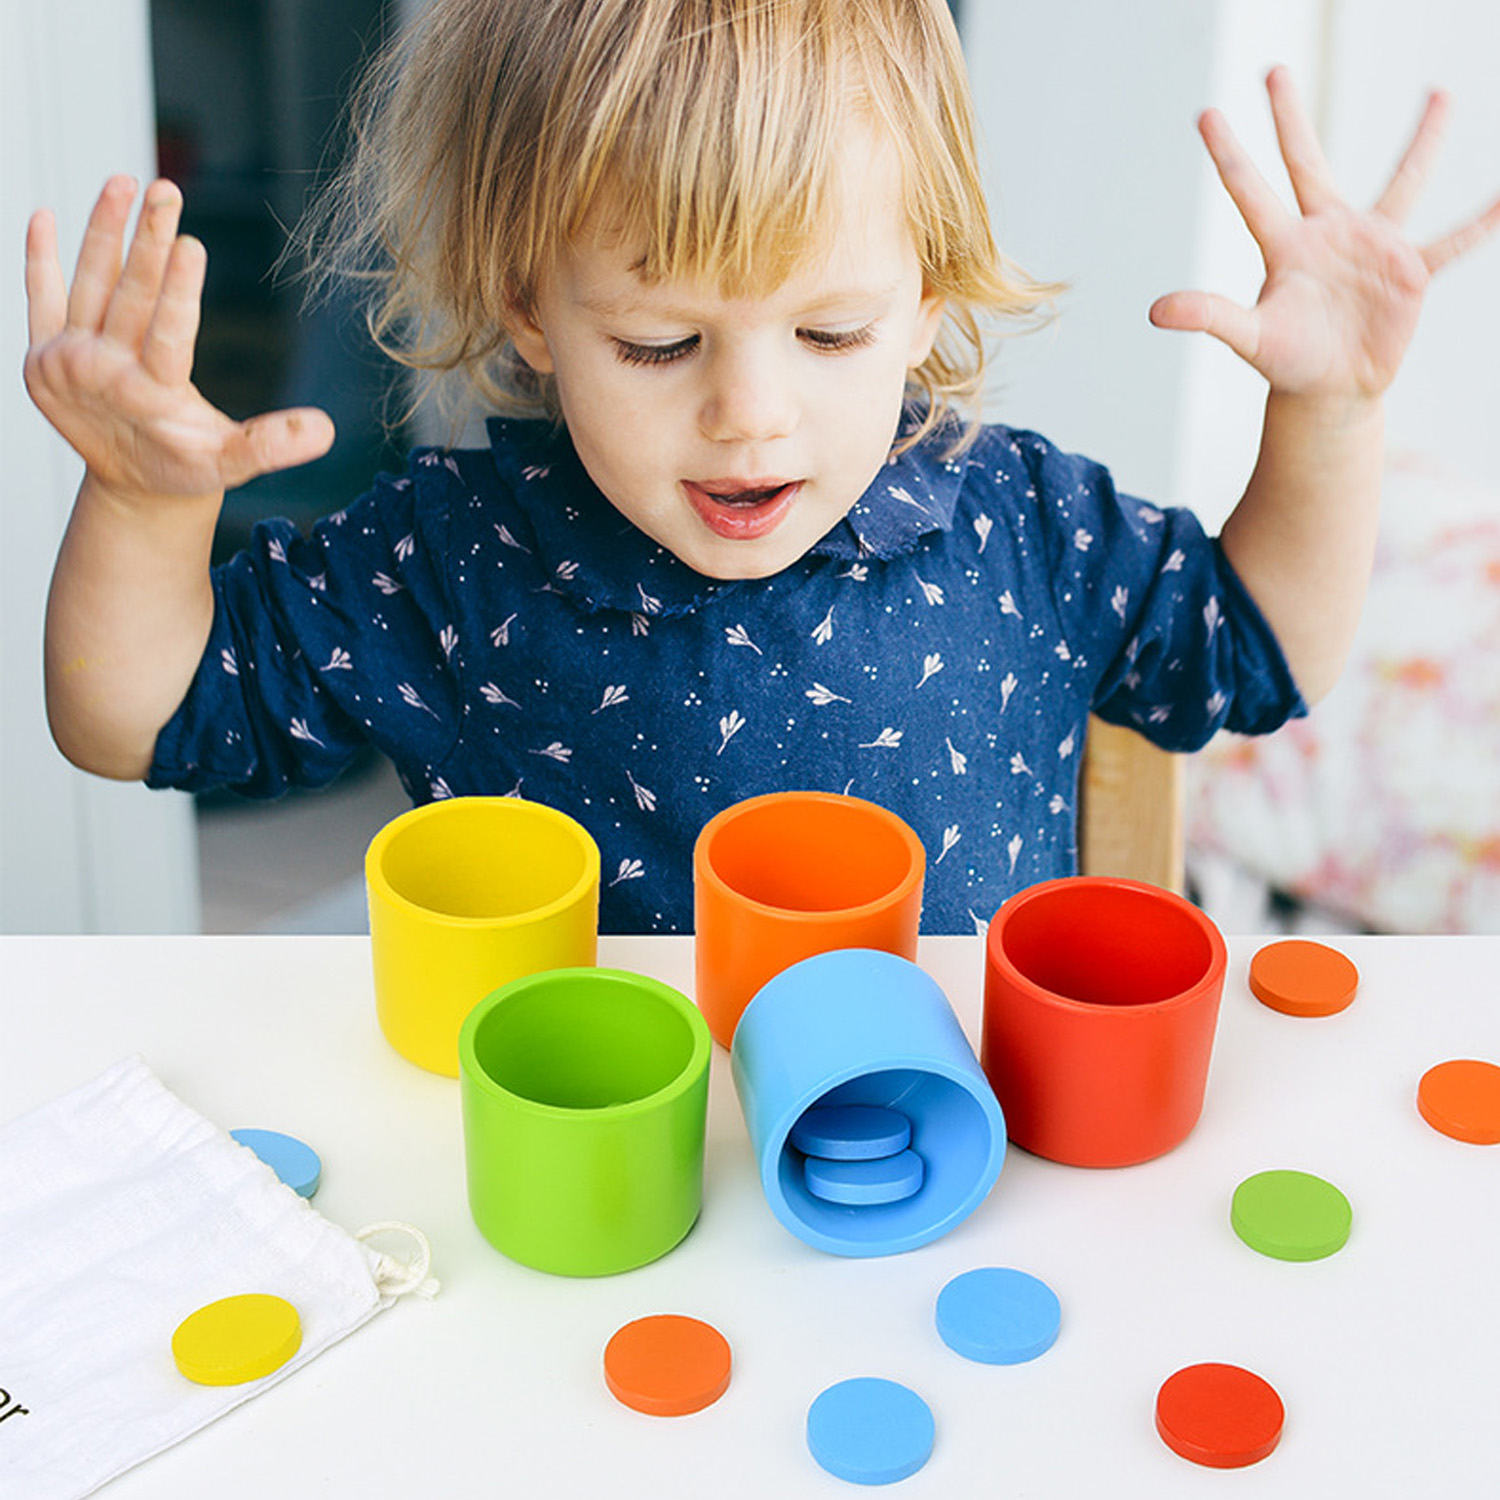 Kids Baby Montessori Wooden Counting Circular Plate Color Sorting Matching Cups Game Rainbow Matching Game Educational Toys